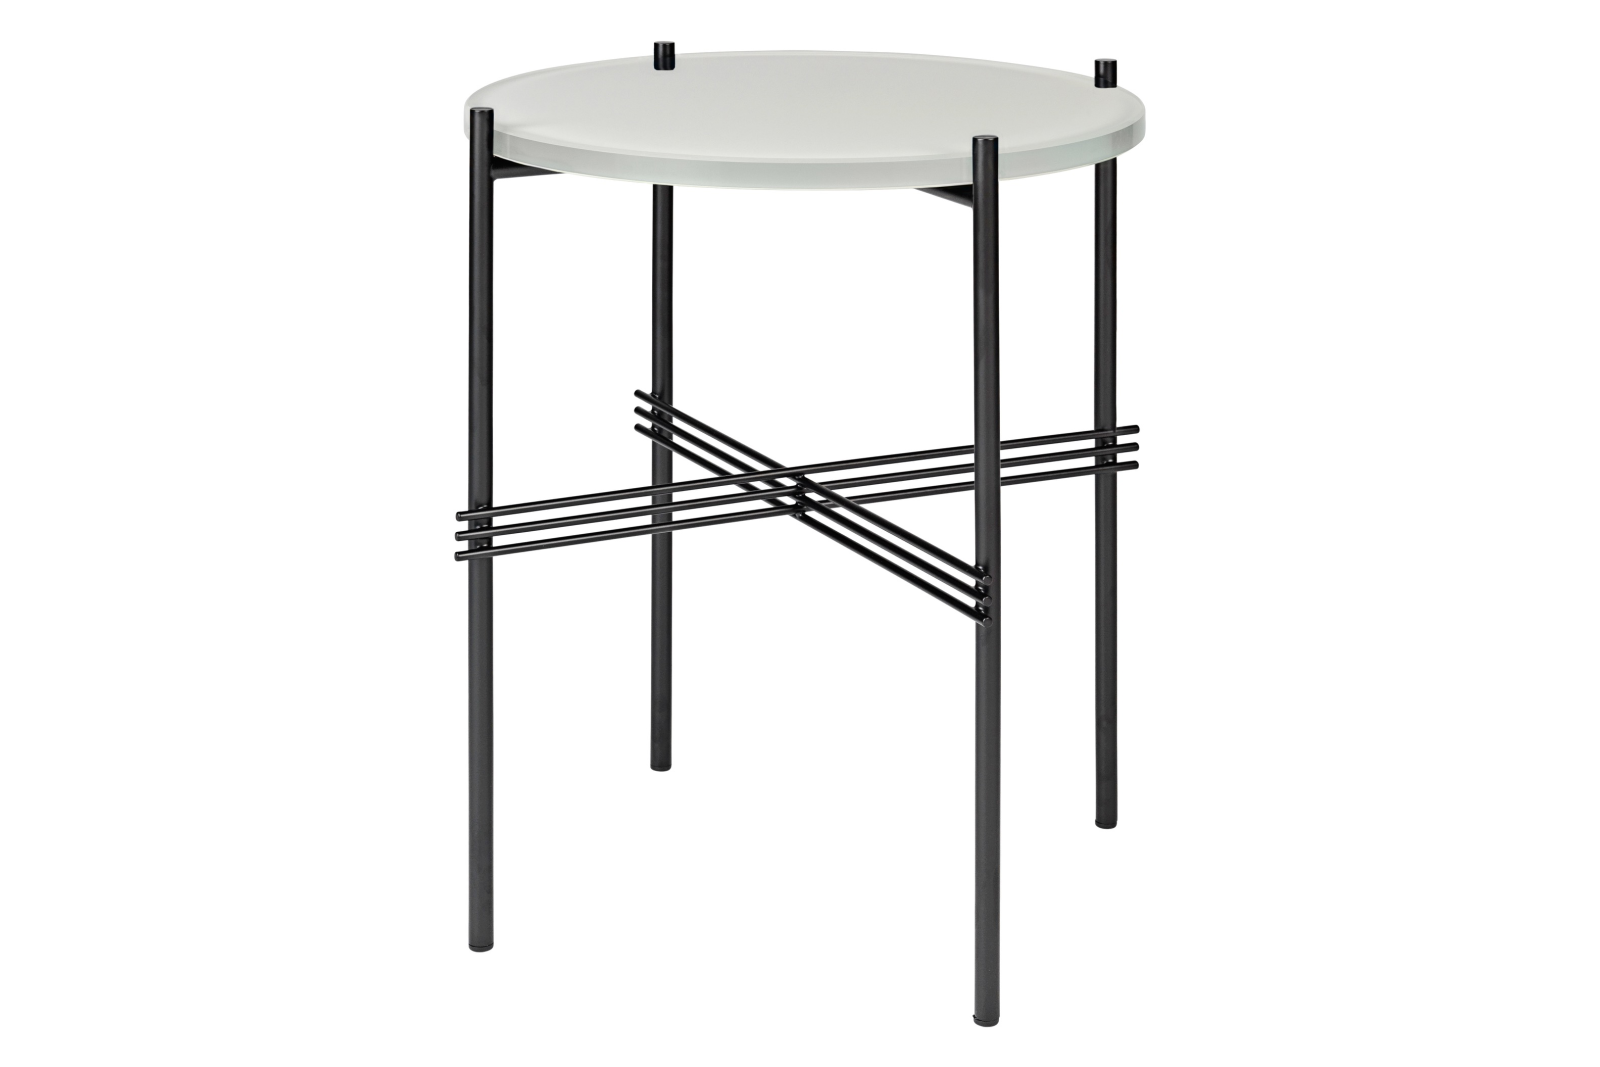 TS Round Side Table with Glass Top Oyster White Top and Black Frame, 0 40 x 51 cm